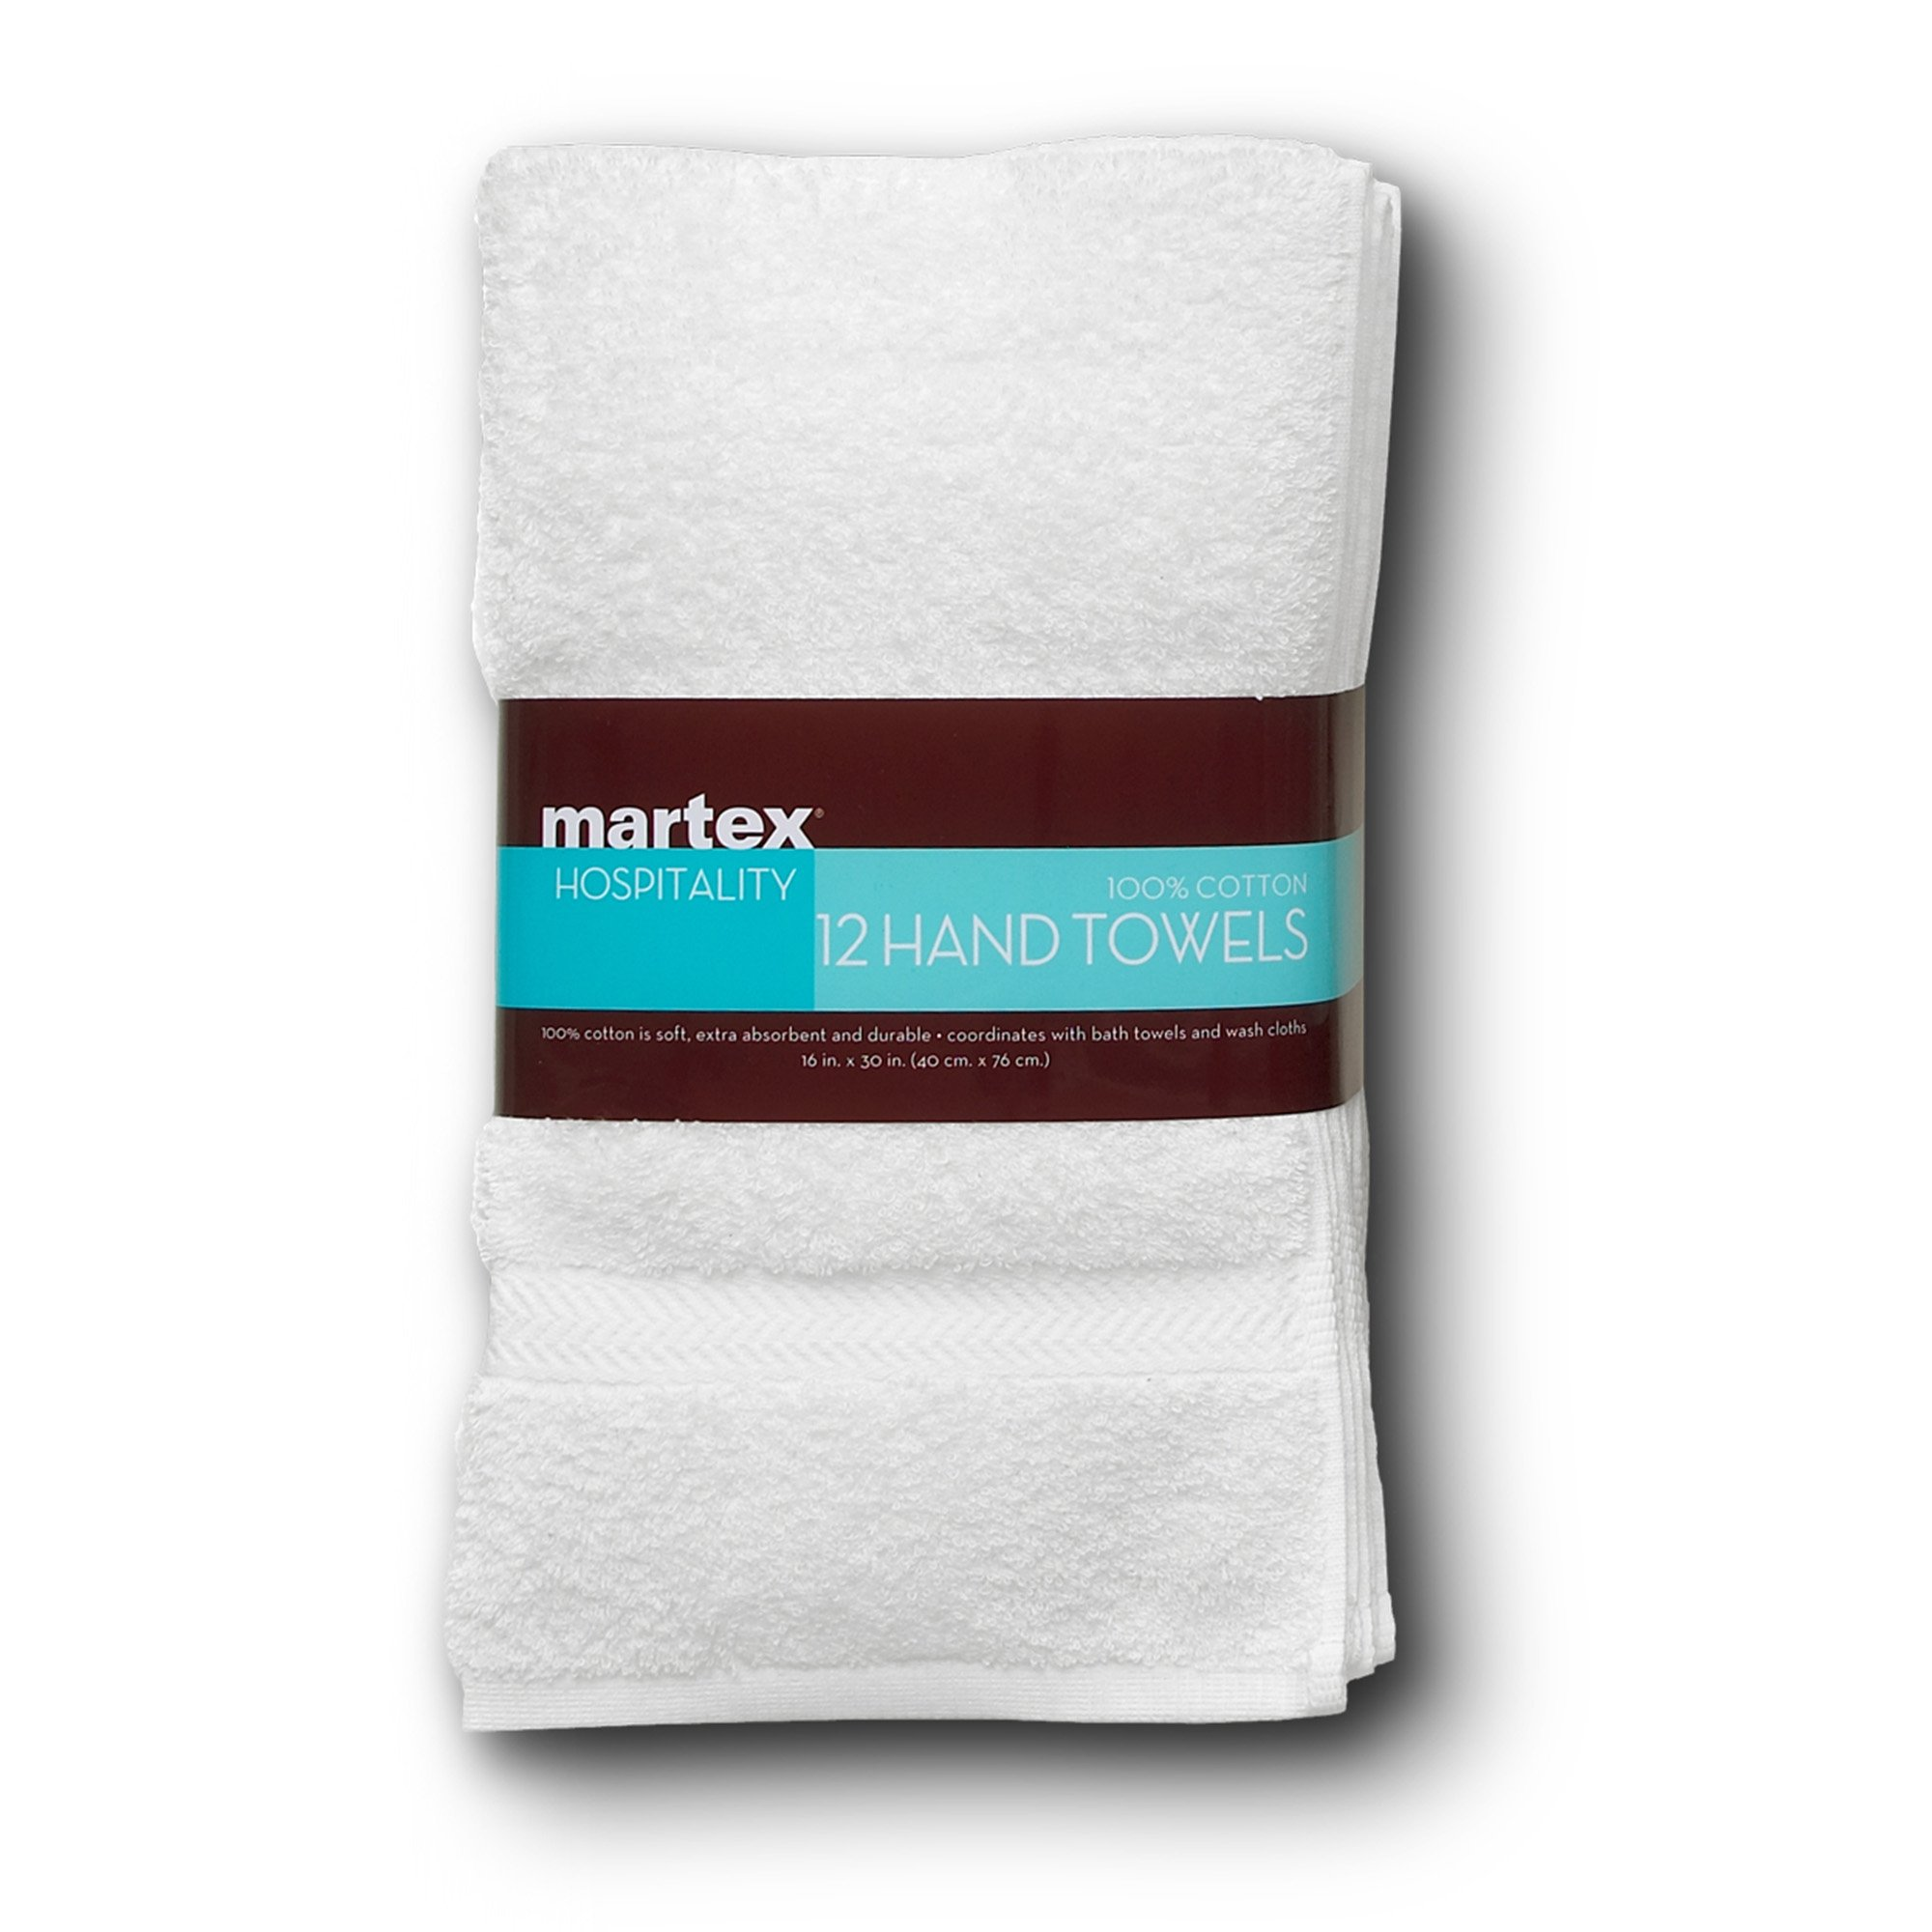 COMMERCIAL PREMIUM 12 PIECE HAND TOWEL SET BY MARTEX - 12 Hand Towels, Home, Business, Shower, Tub, Gym, Pool, Golf, Salon - Machine Washable, Absorbent, Professional Grade, Hotel Quality - WHITE